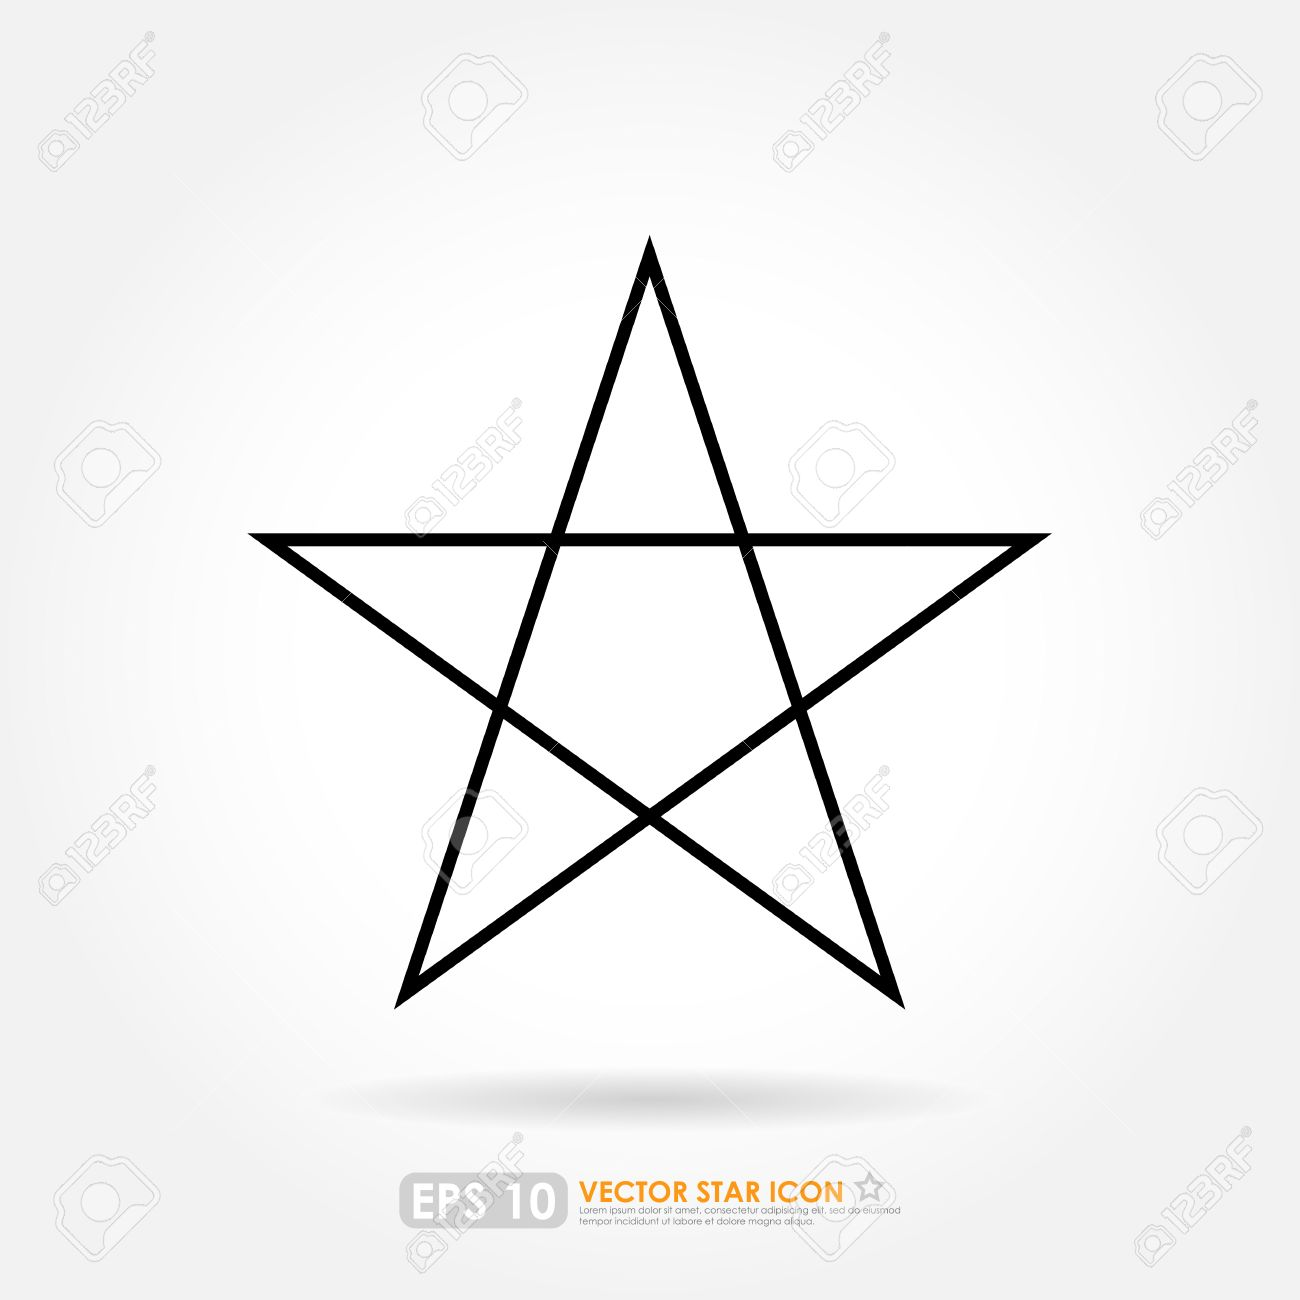 Simple star outline vector icon stock photo picture and royalty simple star outline vector icon stock photo 28162405 sciox Gallery